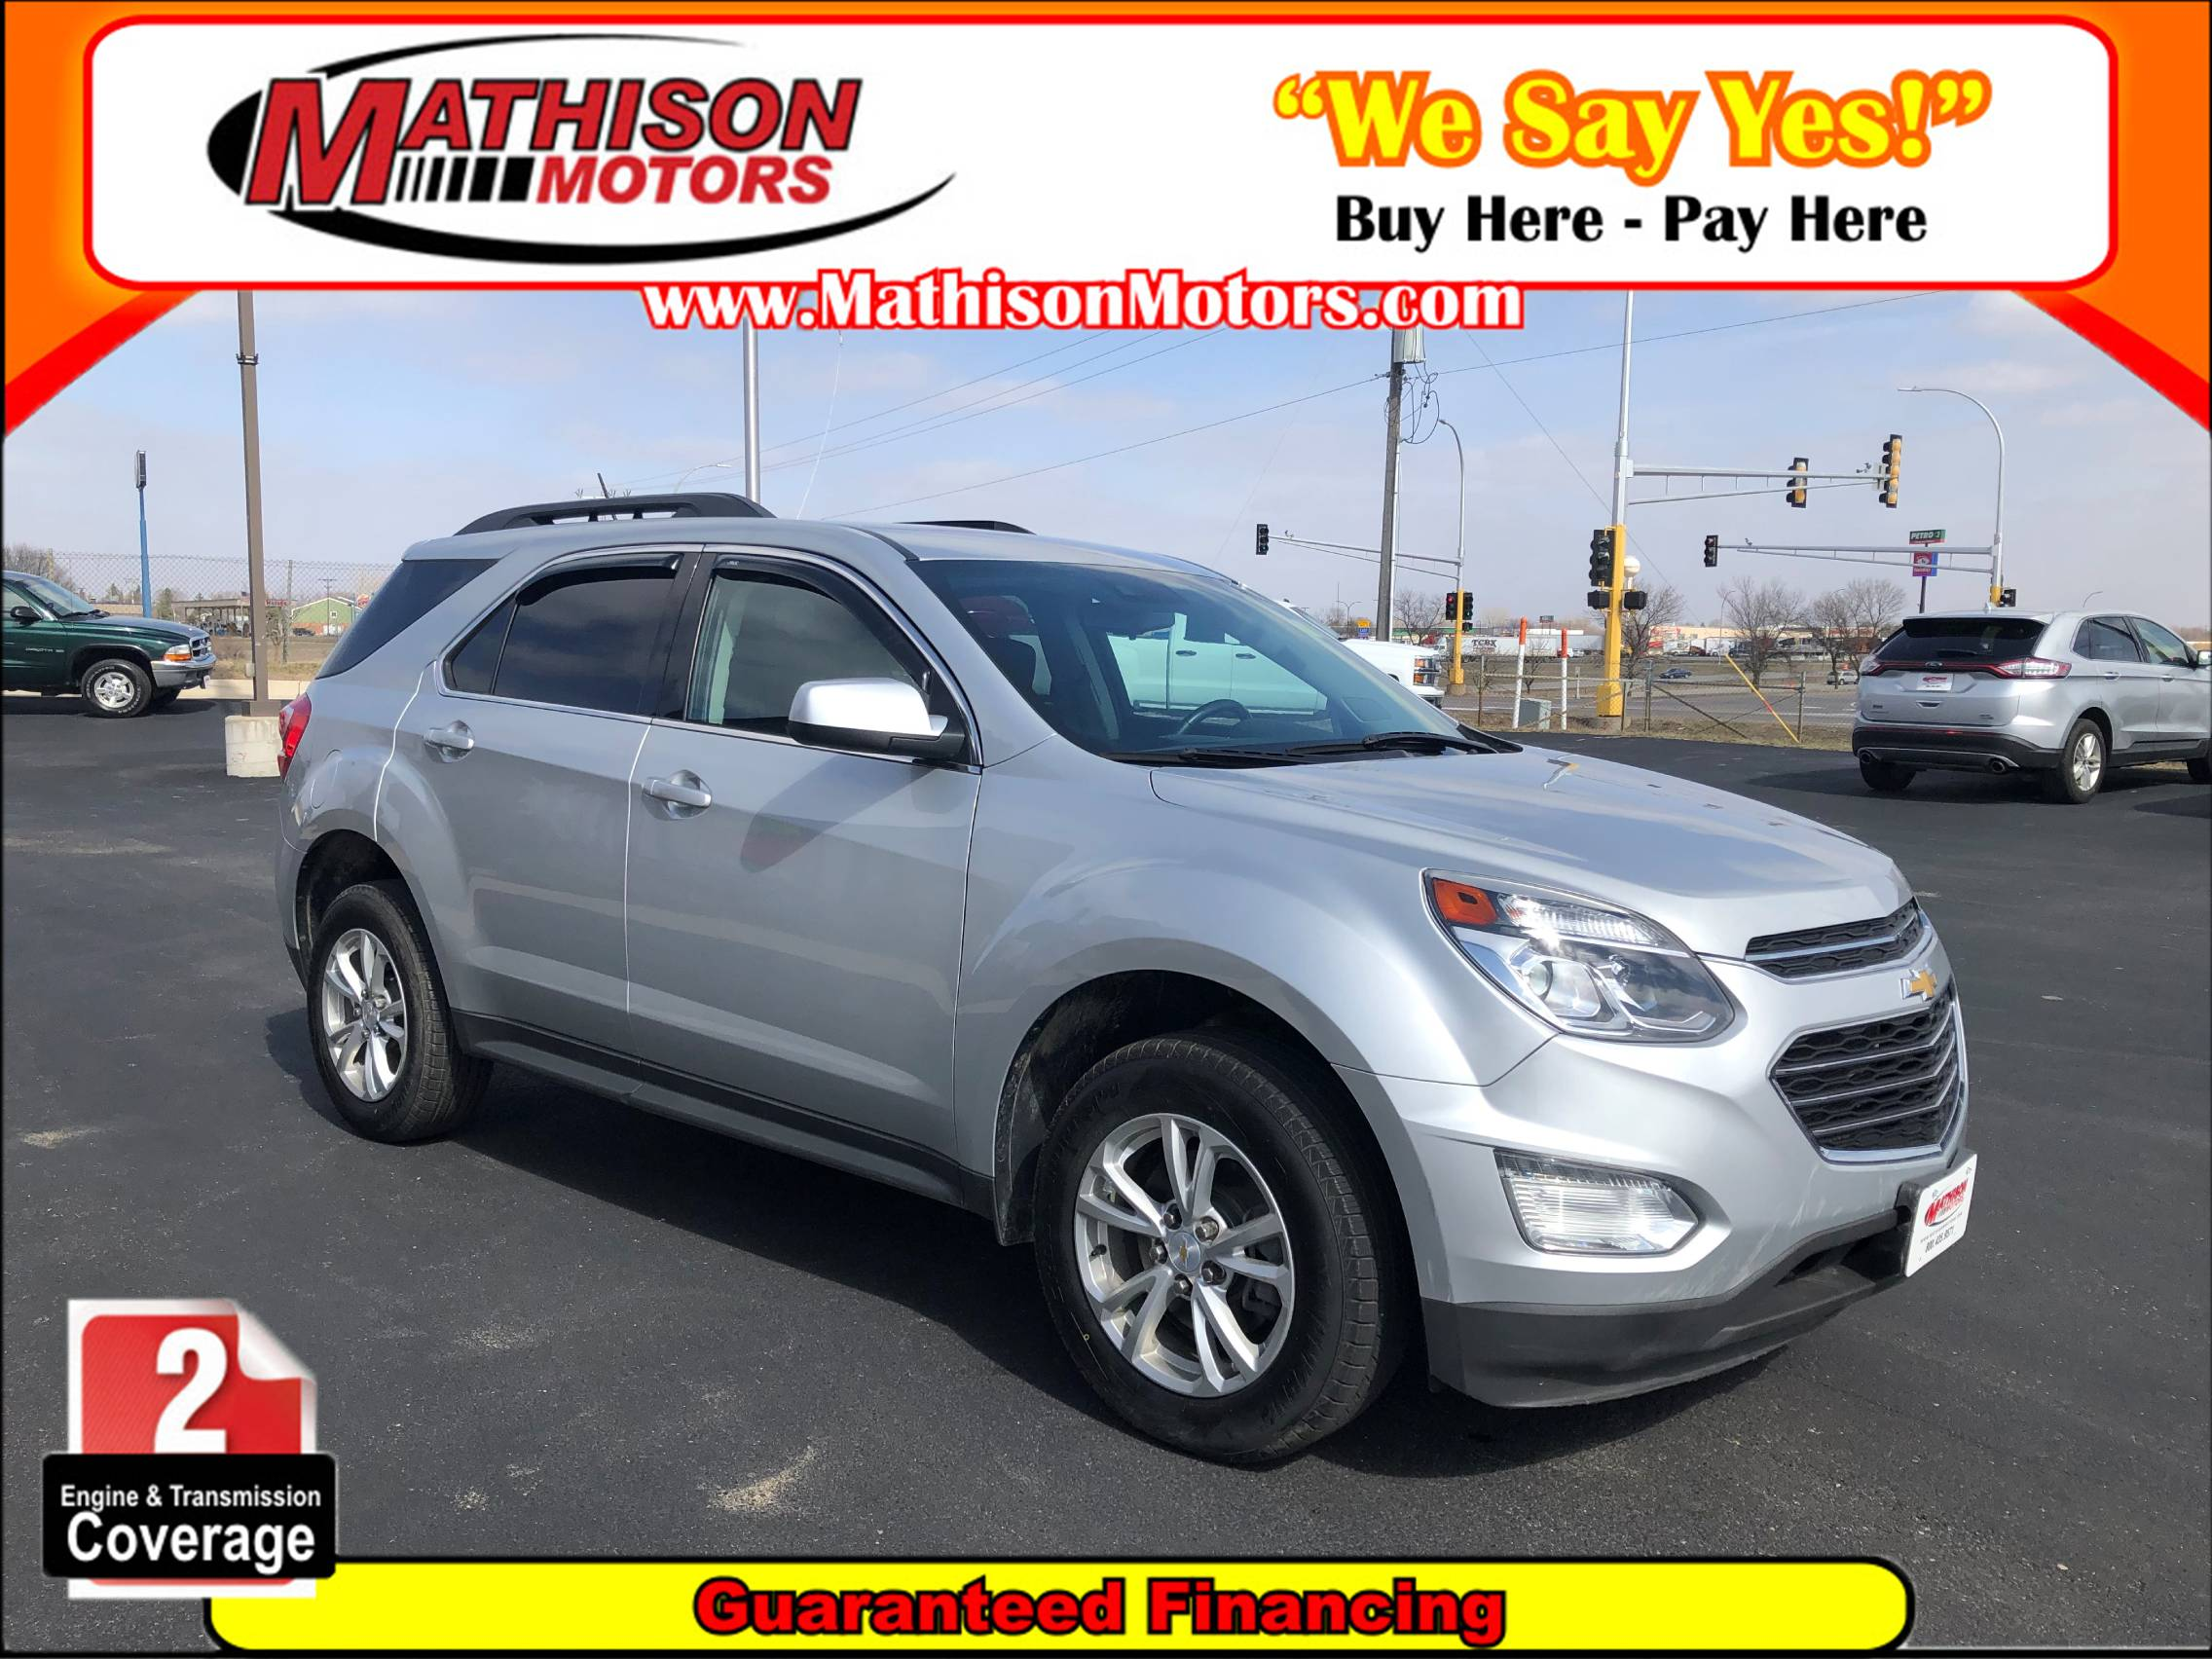 used vehicle - SUV CHEVROLET EQUINOX 2017